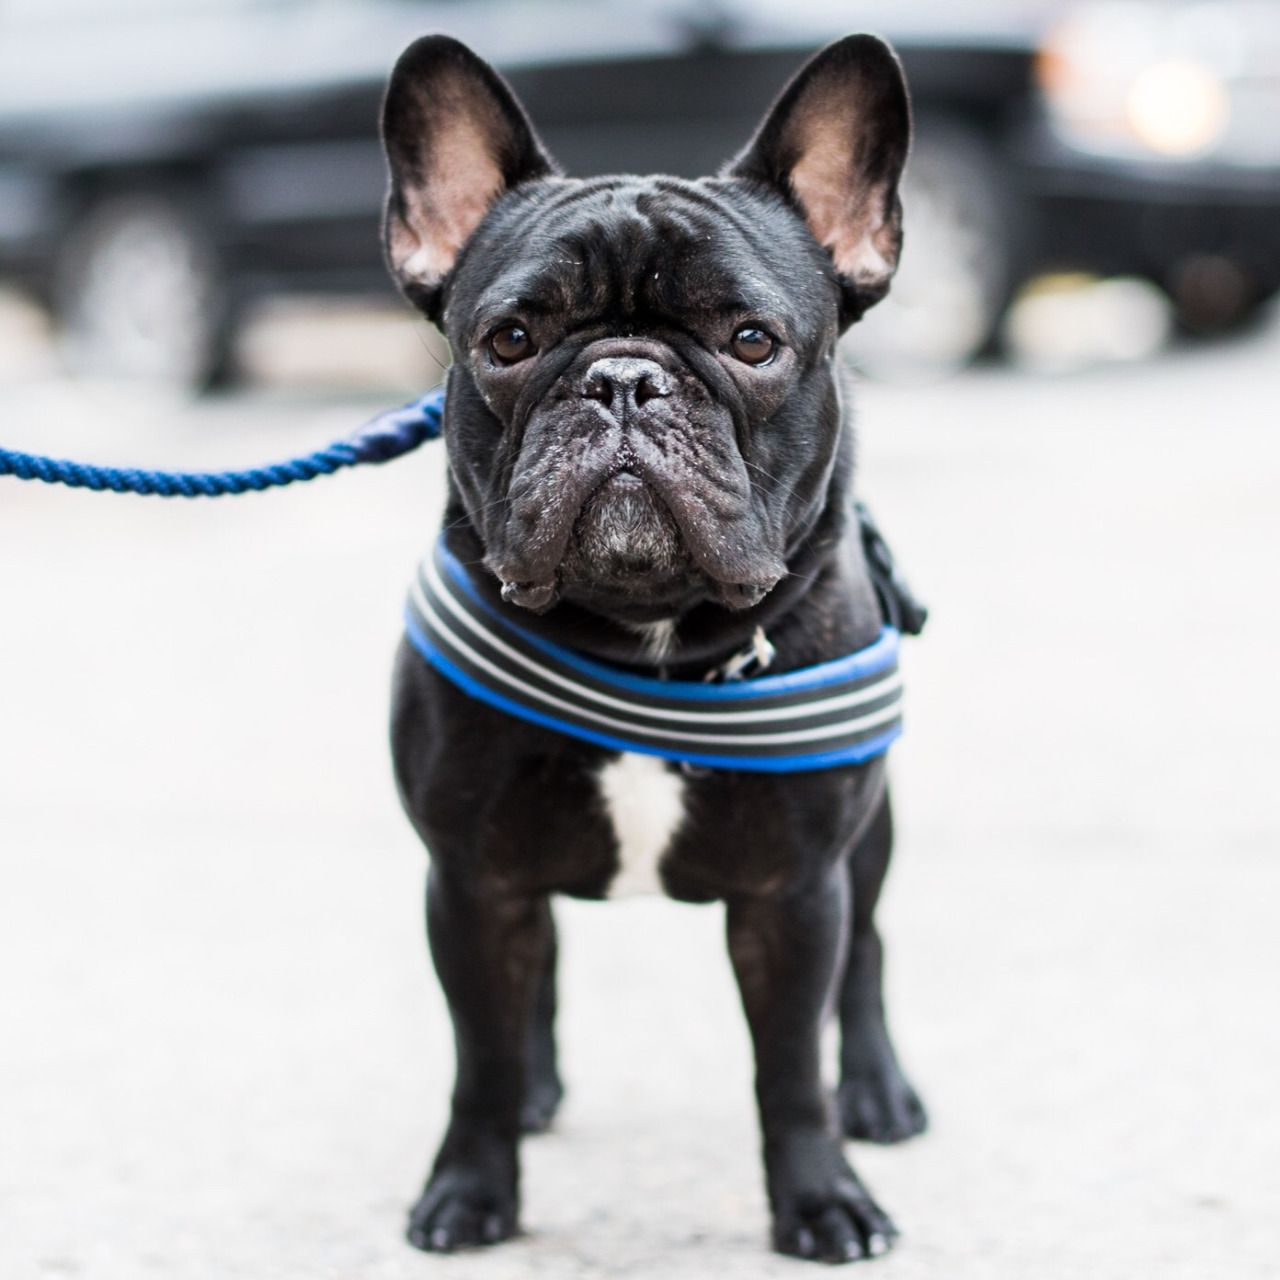 Buckminster Fuller, French Bulldog (3 y/o), 2nd & 1st Ave